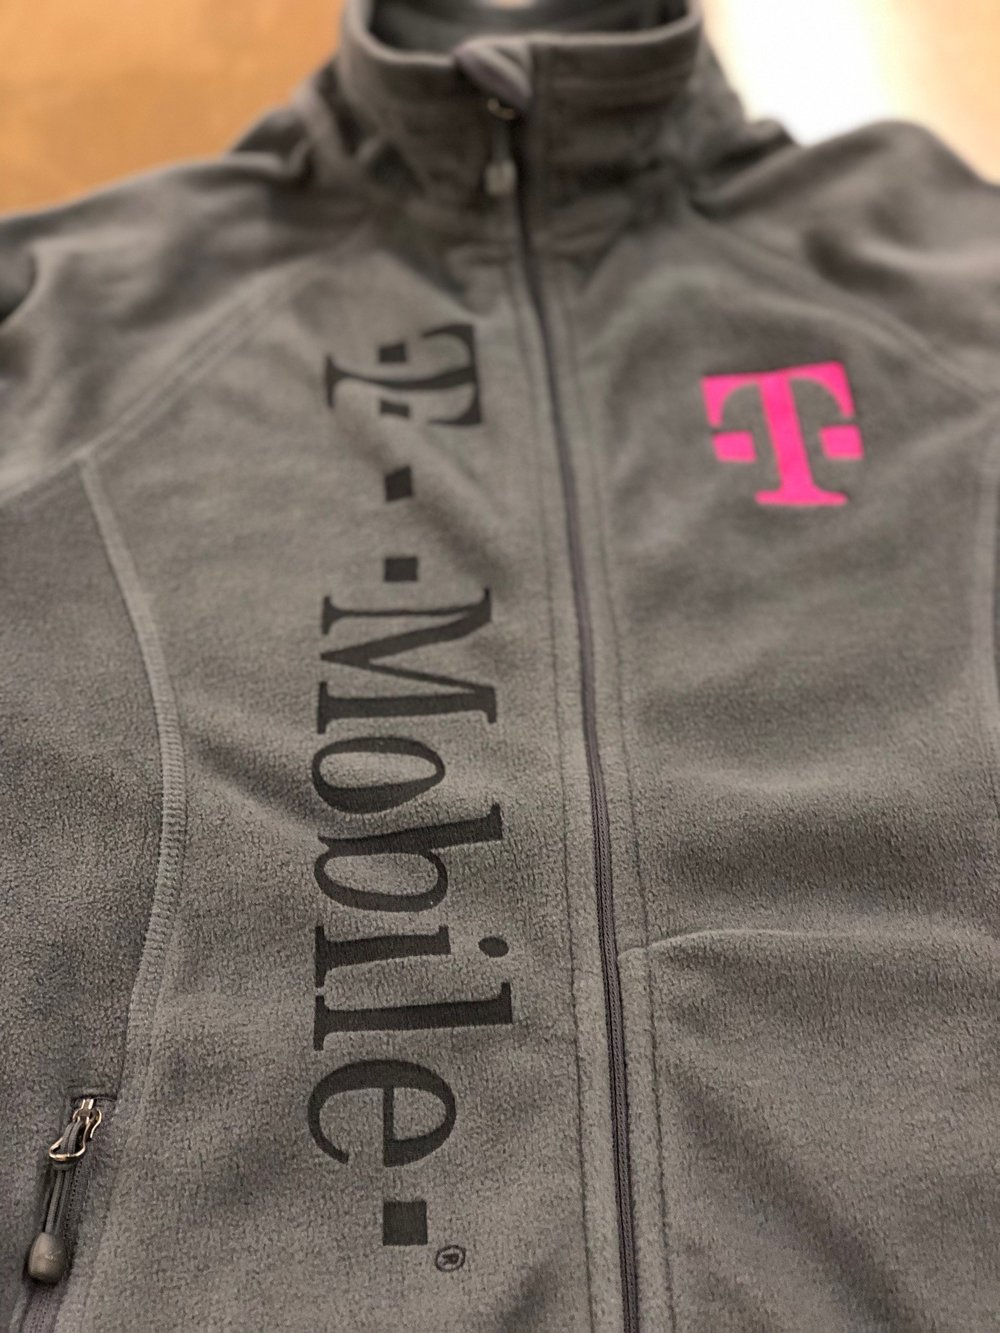 Laser Etched and Embroidered Fleece Jacket For T-Mobile